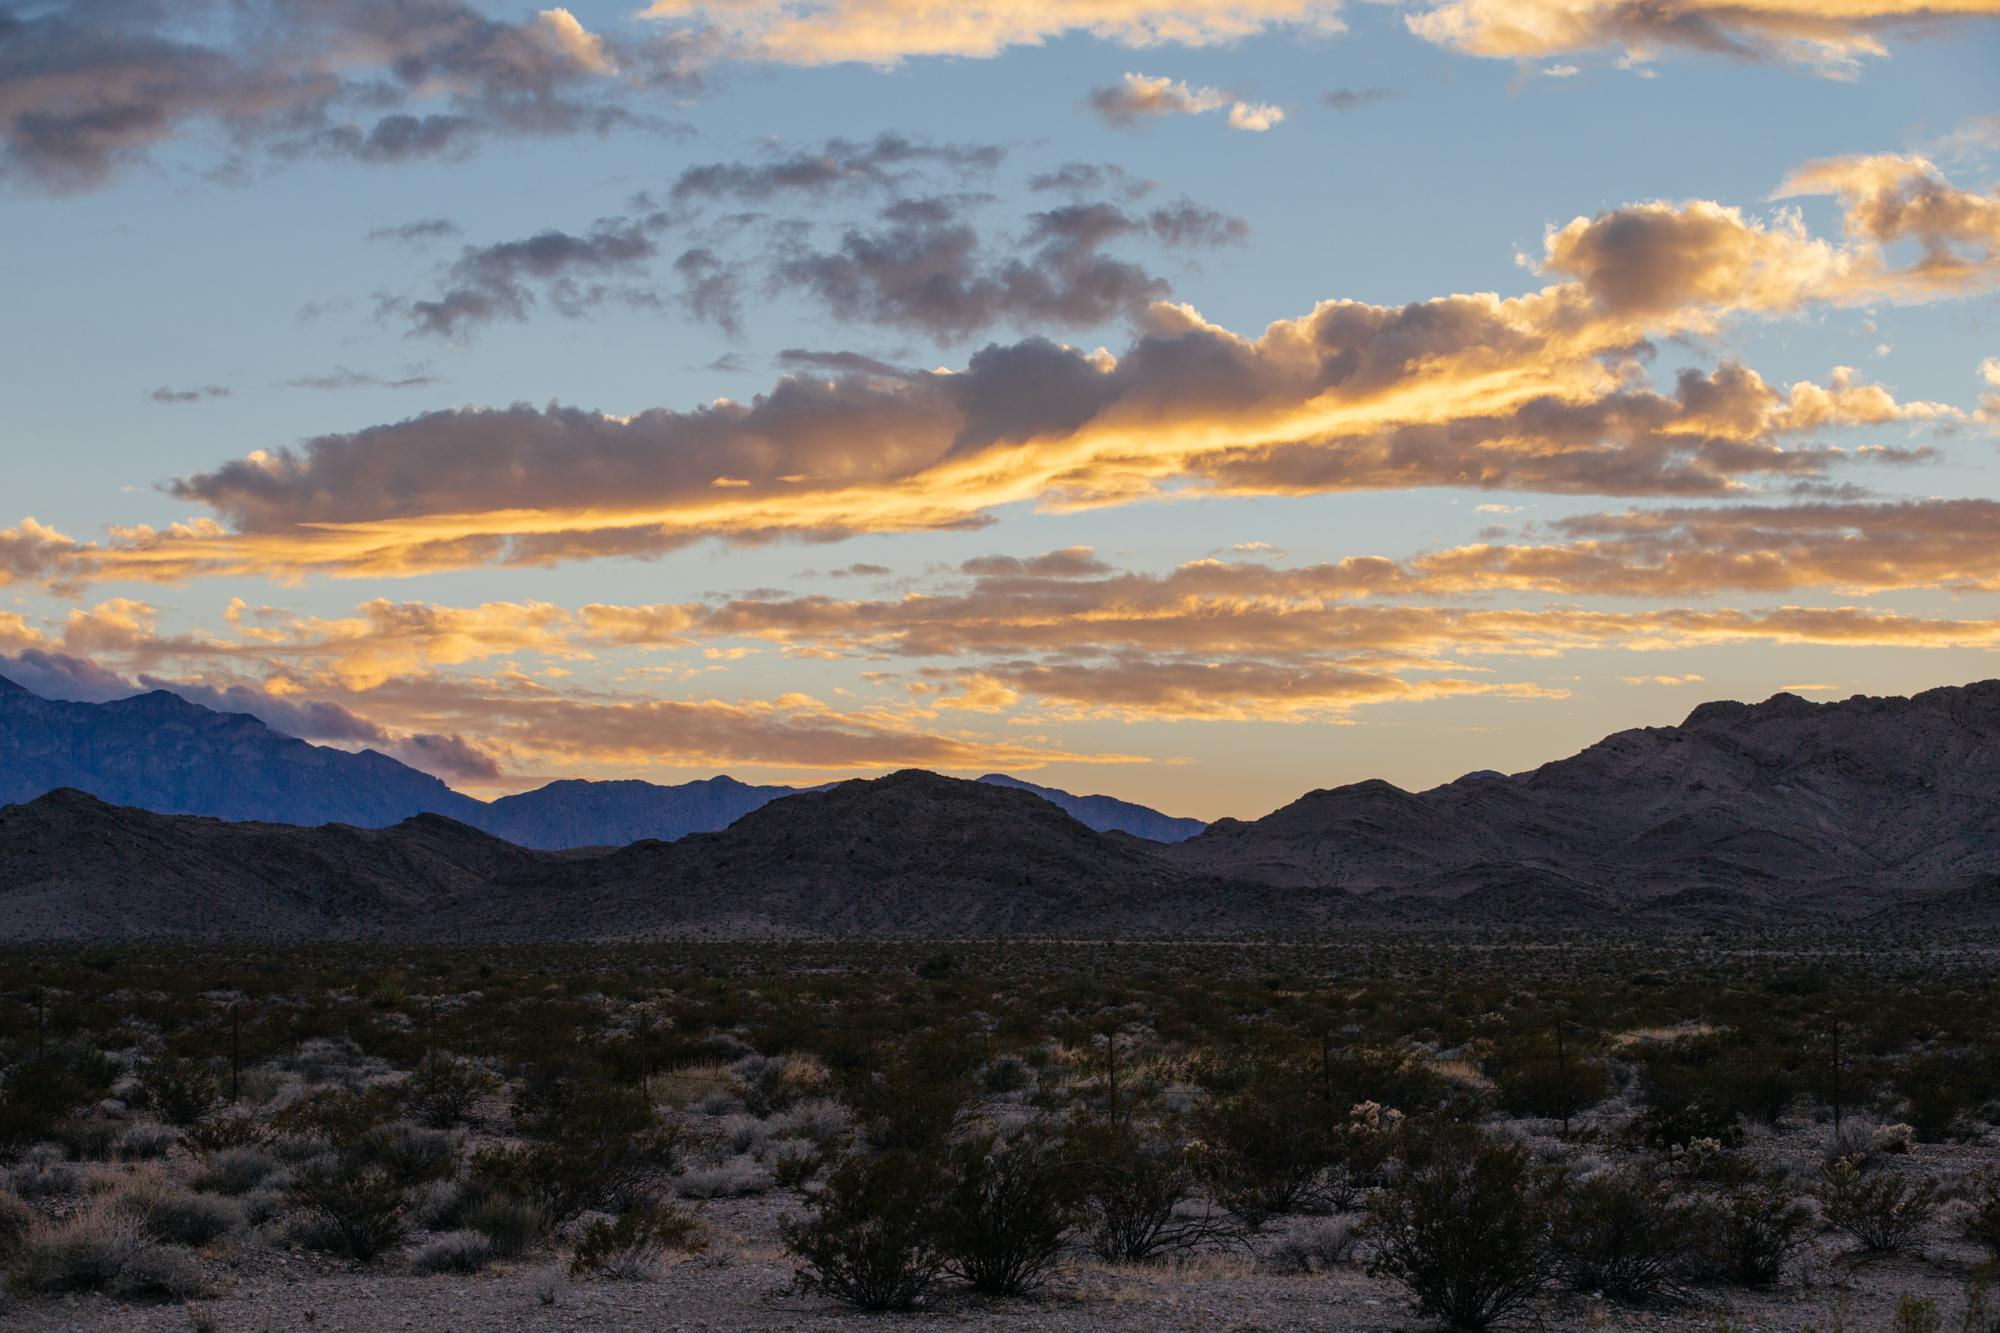 Sunsets in the Mojave.